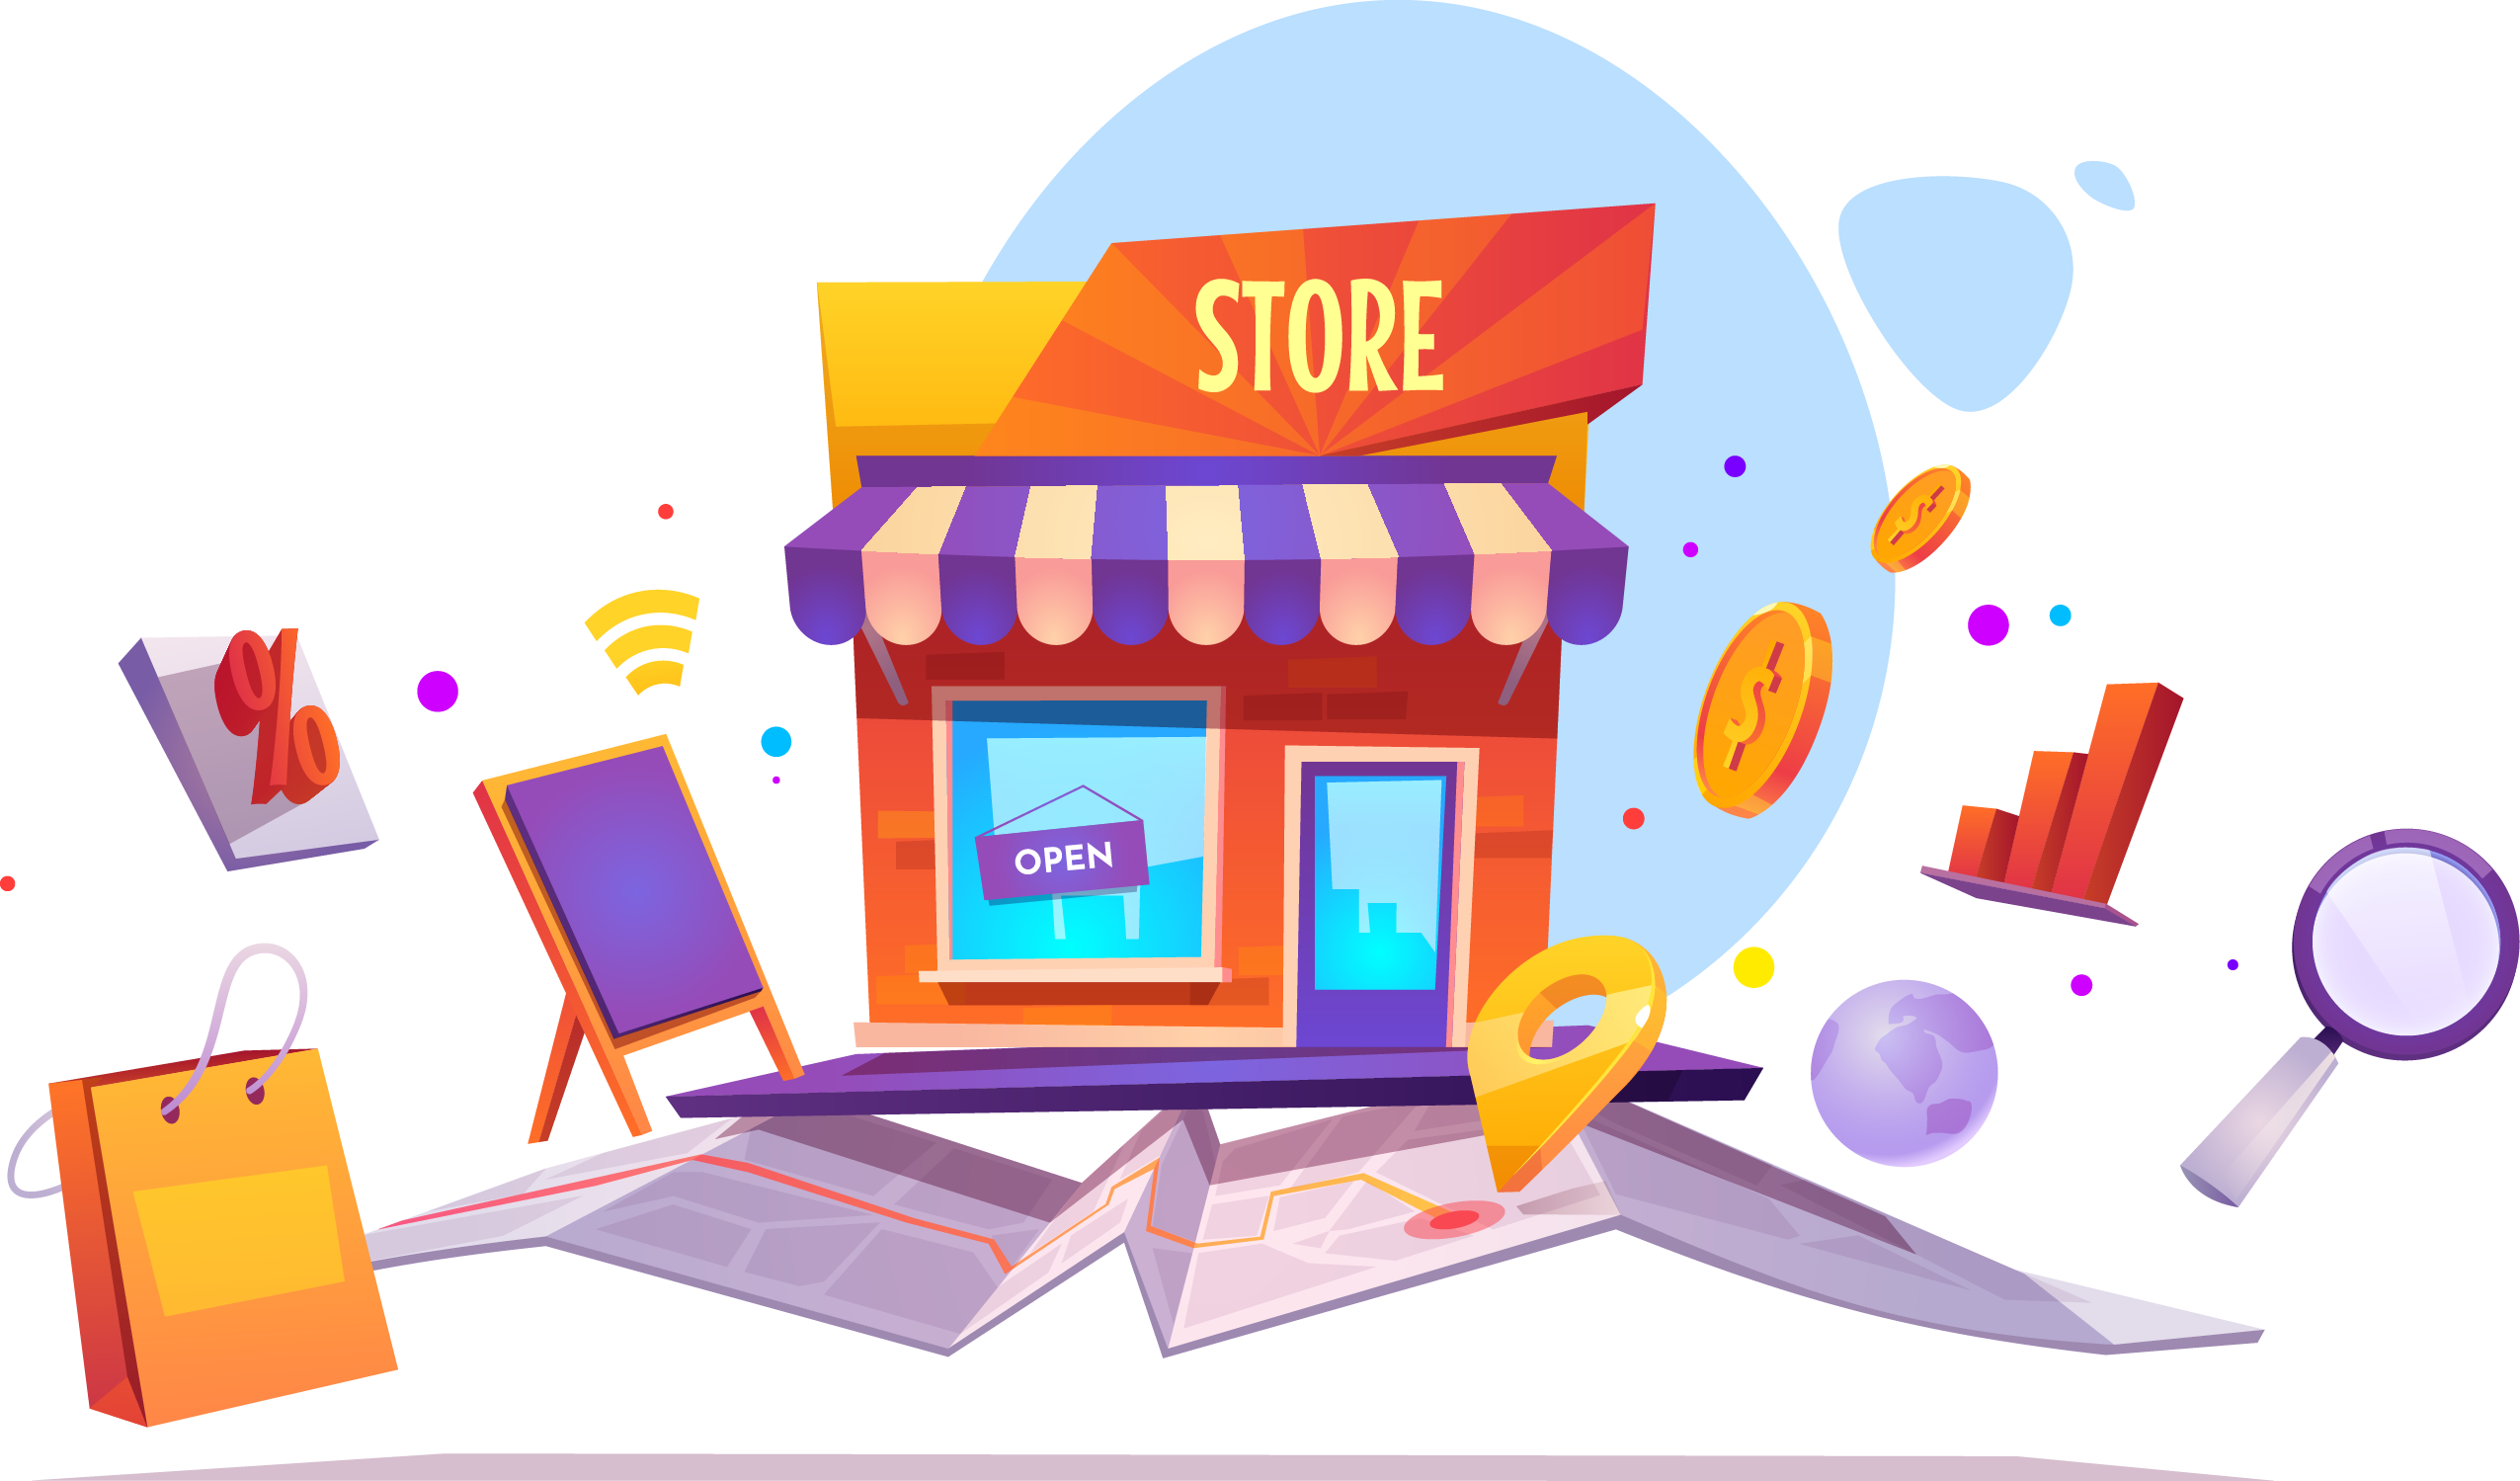 Geo-targeted store